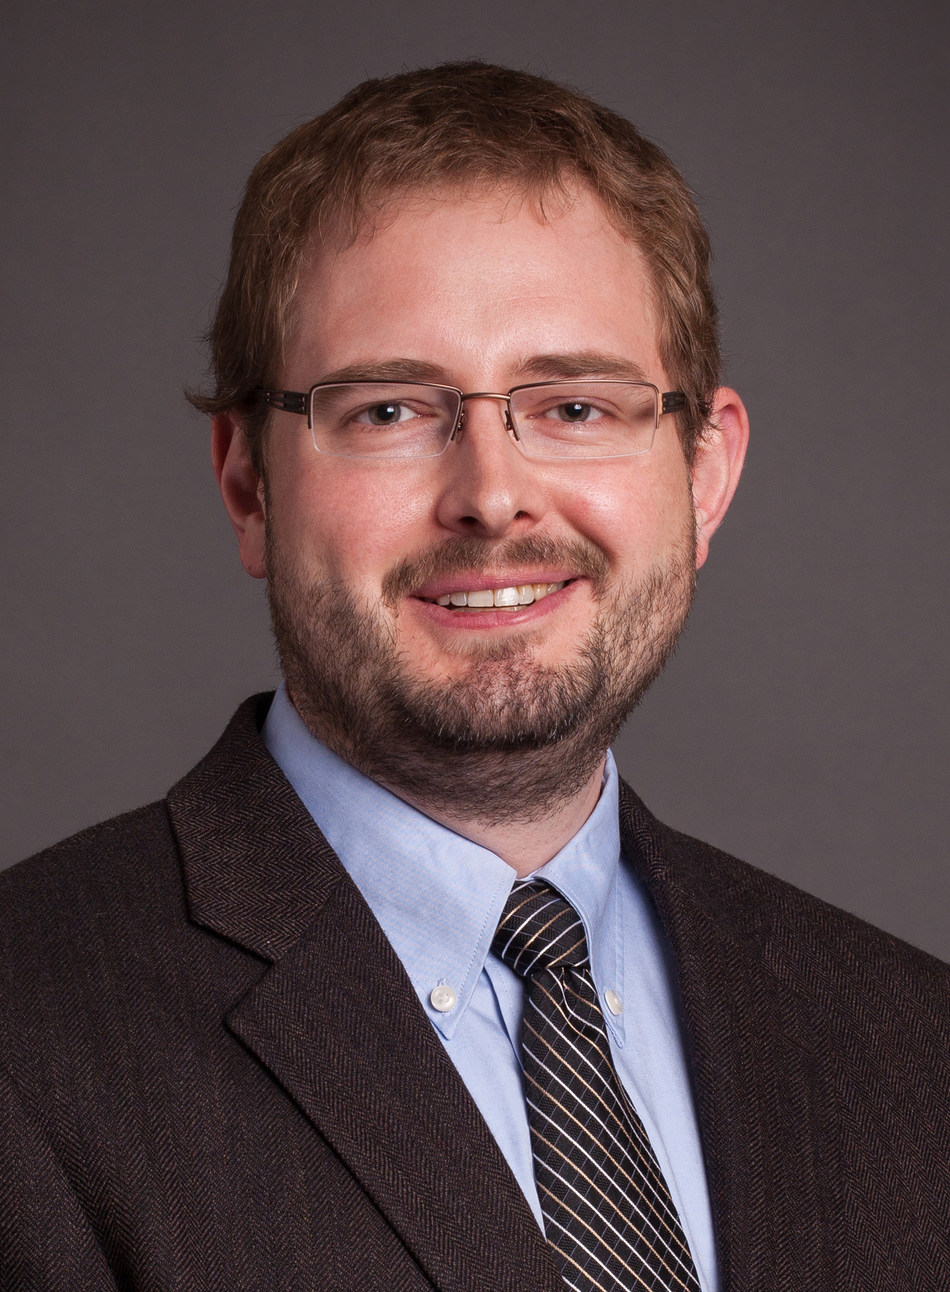 Burns & McDonnell has promoted Nathan Newman to lead its expanding Global Facilities team in the Southeast.